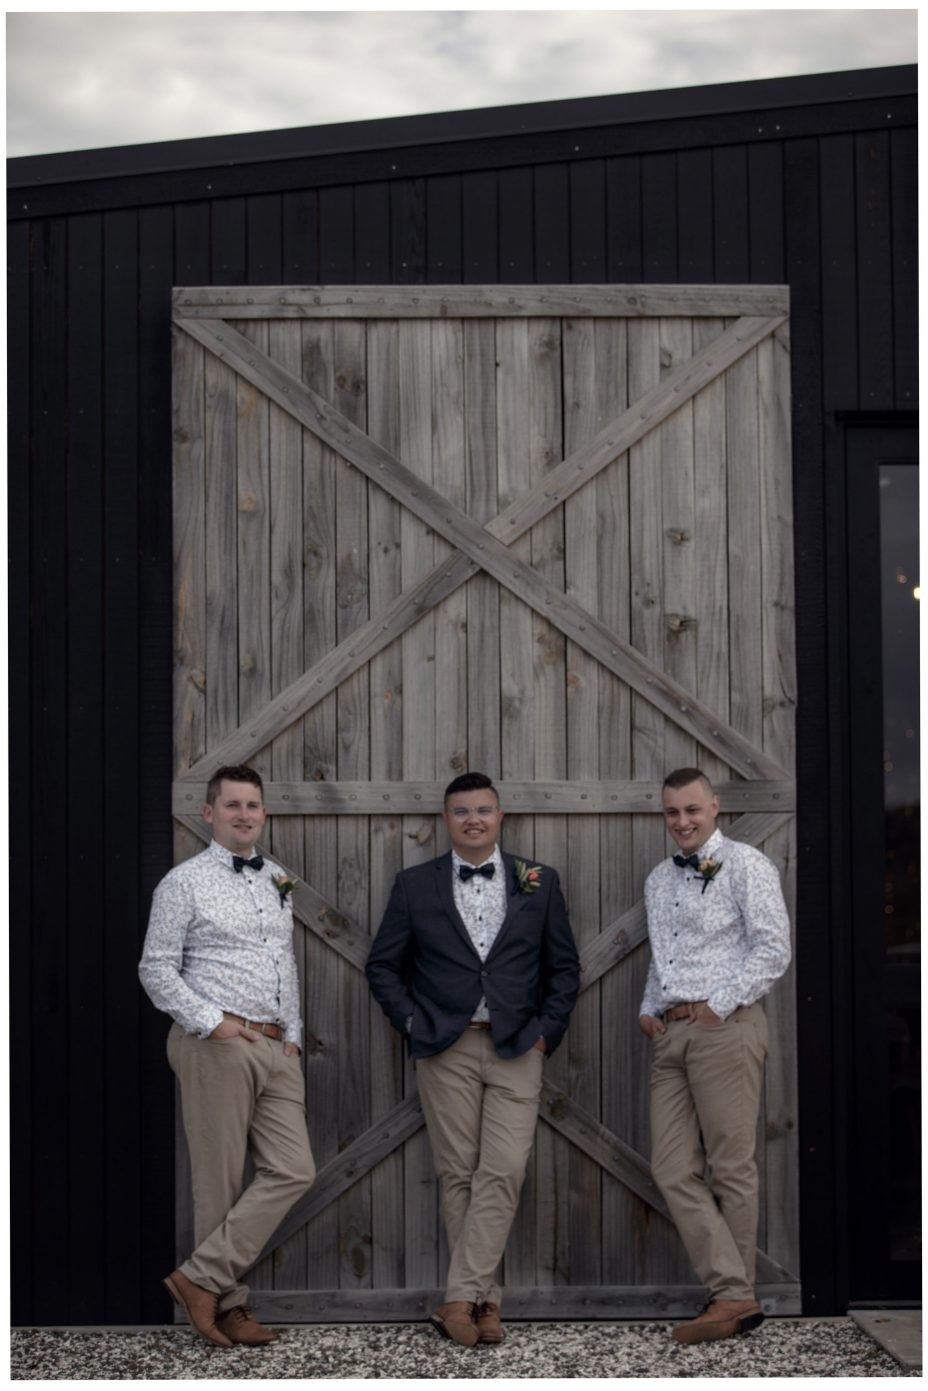 Groom and groomsmen lean against the large wooden doors of The Barn wedding reception venue at The Hunting Lodge Winery